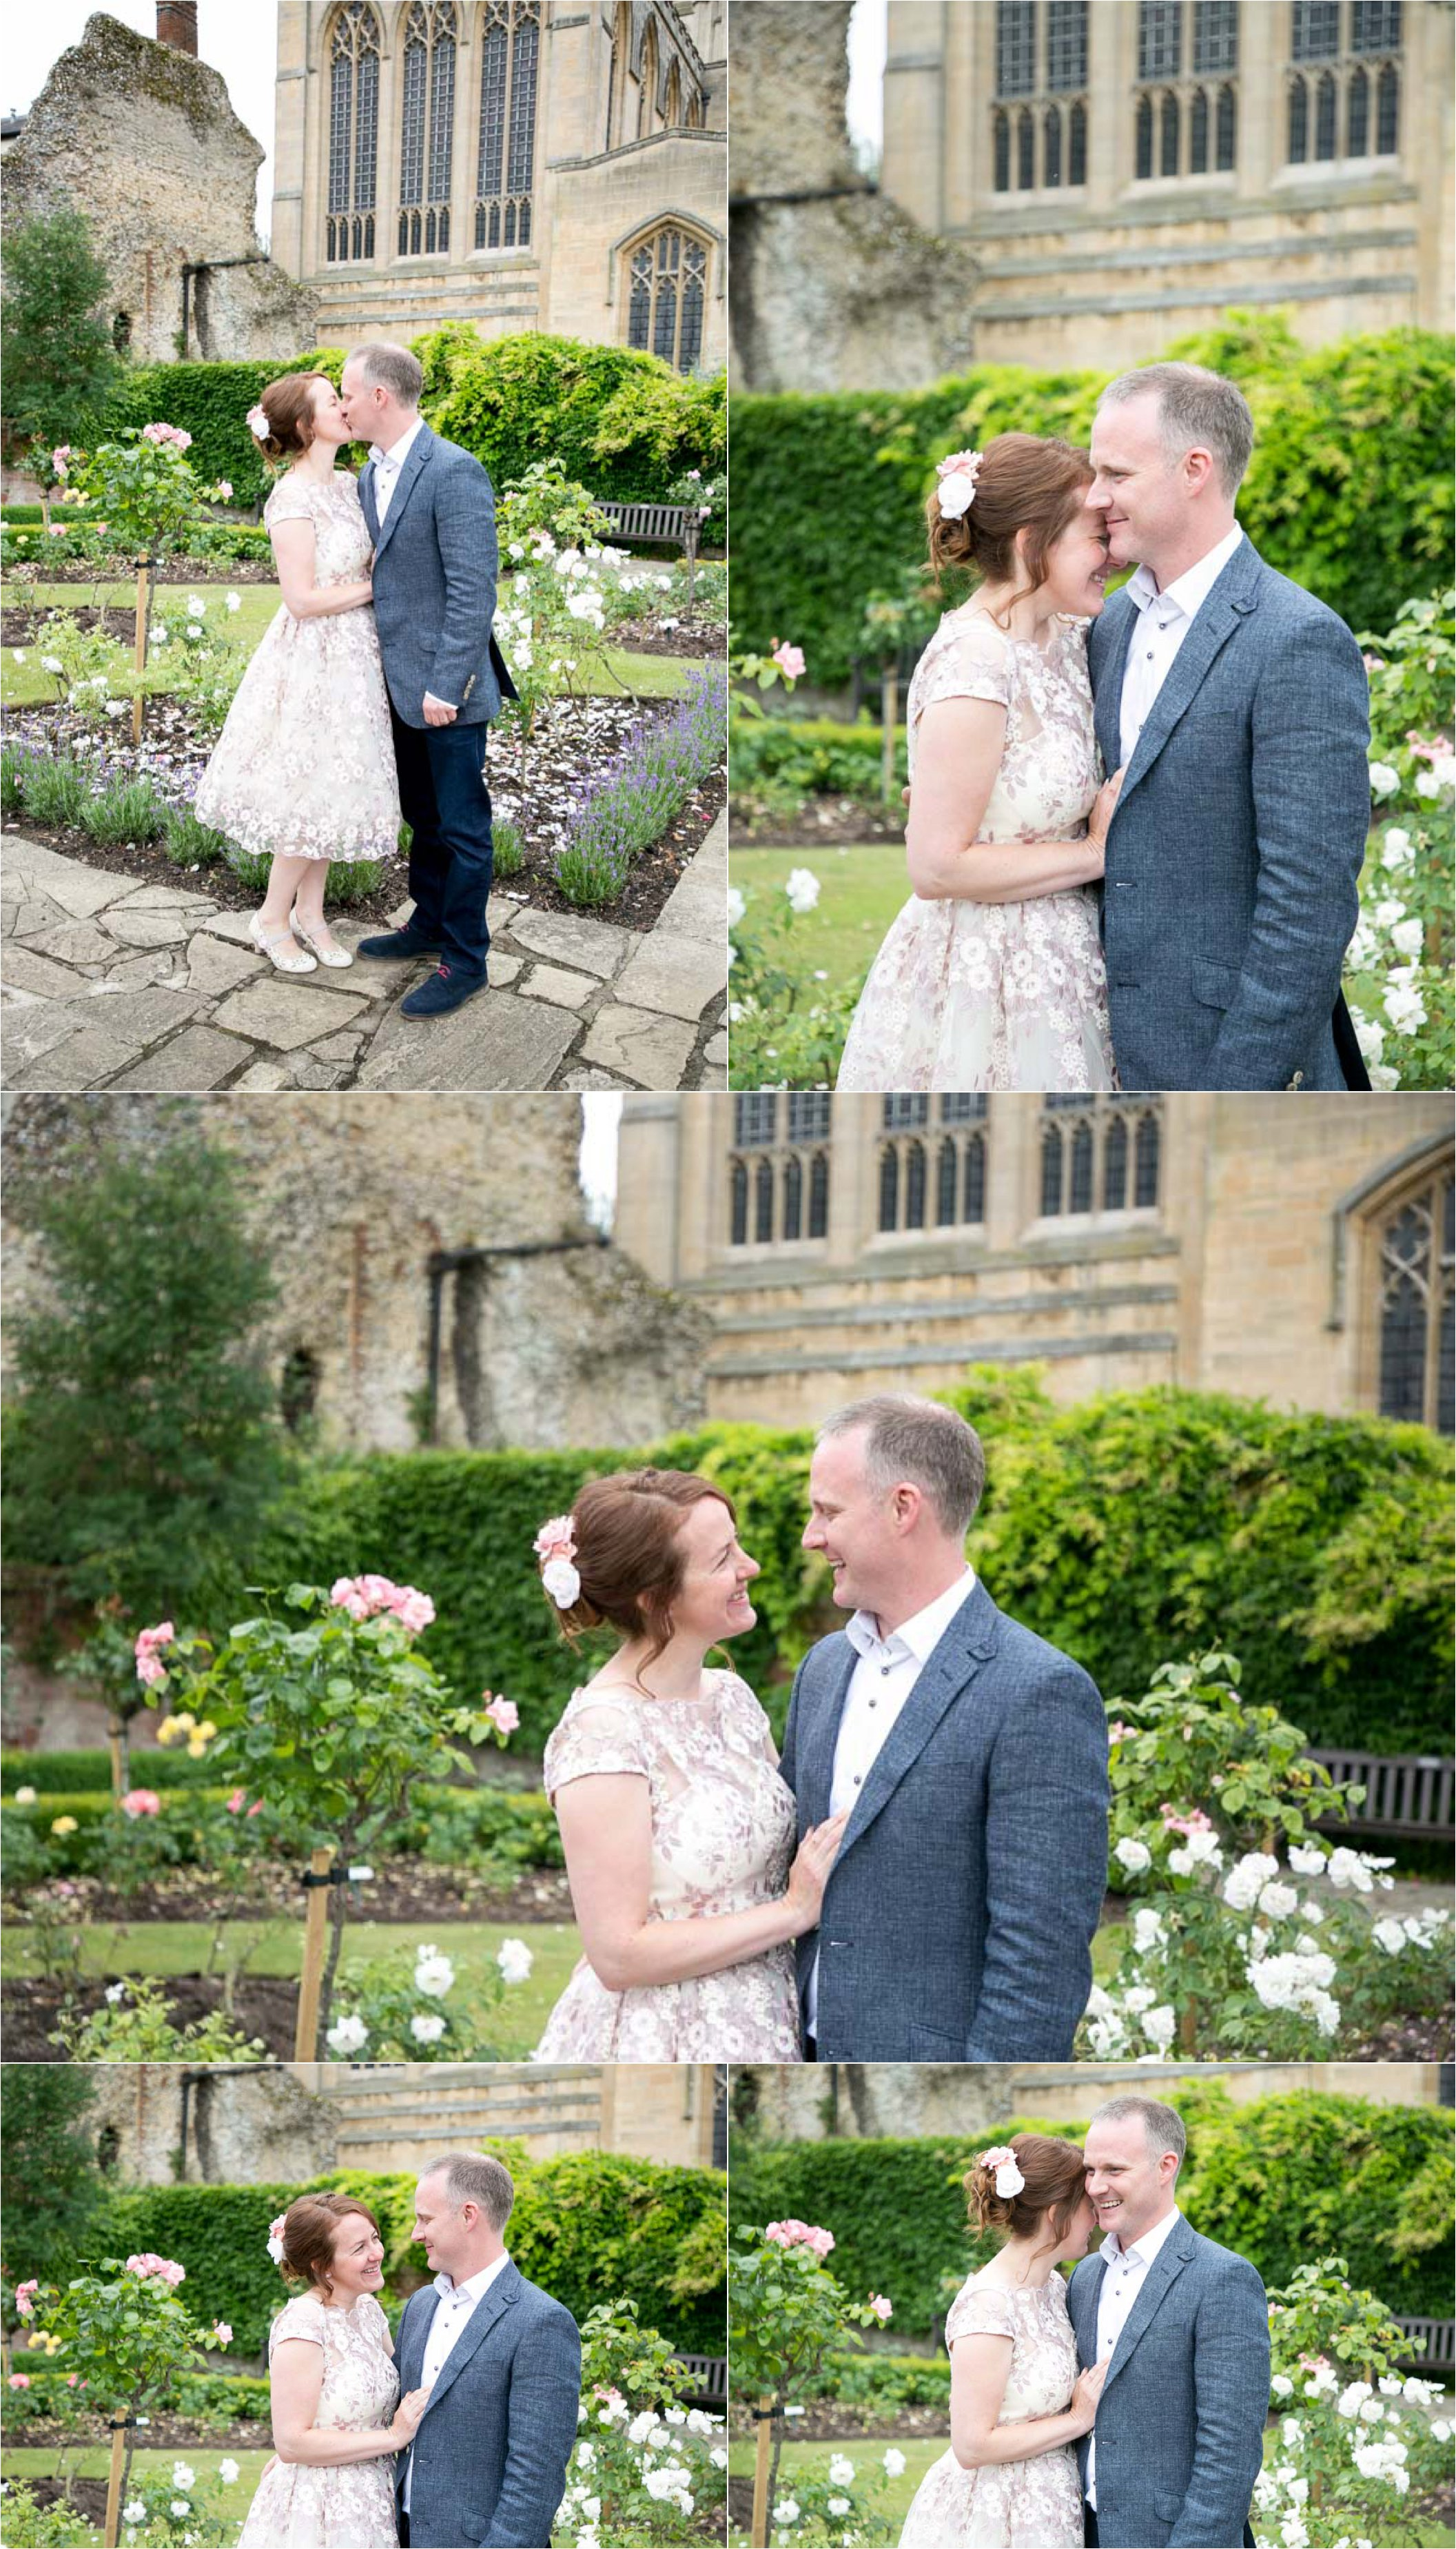 relaxed wedding photography in the abbey gardens bury st edmunds